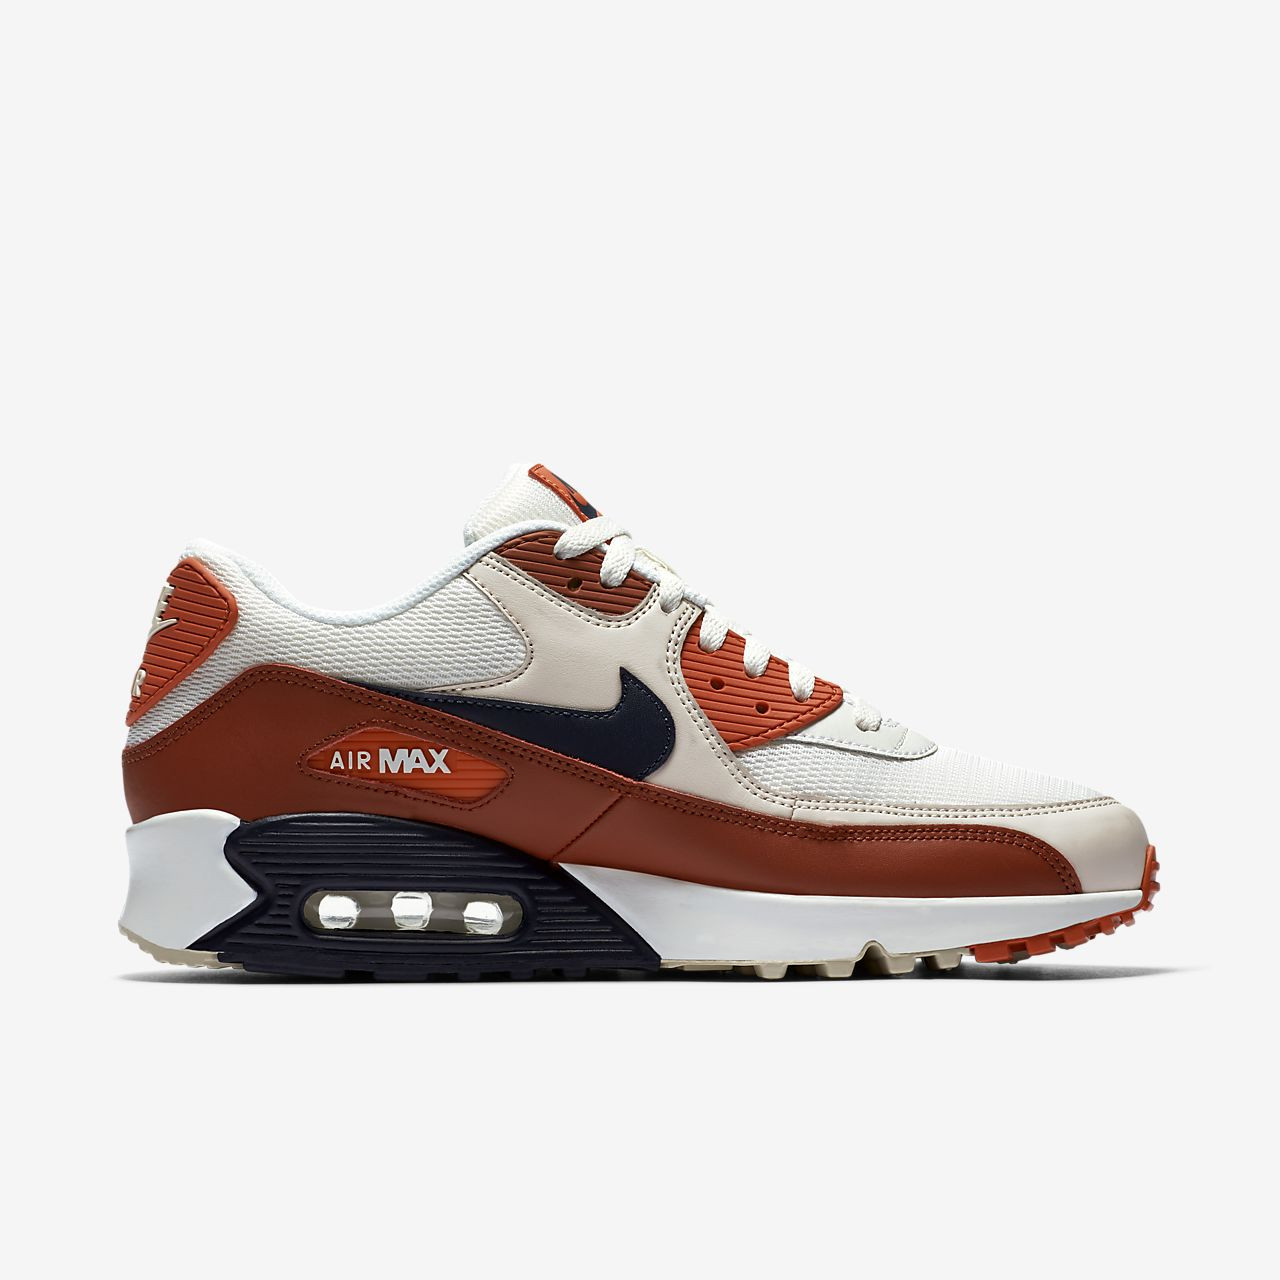 Air Max 90 Essential Brillante Nike Air Max 90 Essential Men S Shoe Nike Of 36  Adorable Air Max 90 Essential